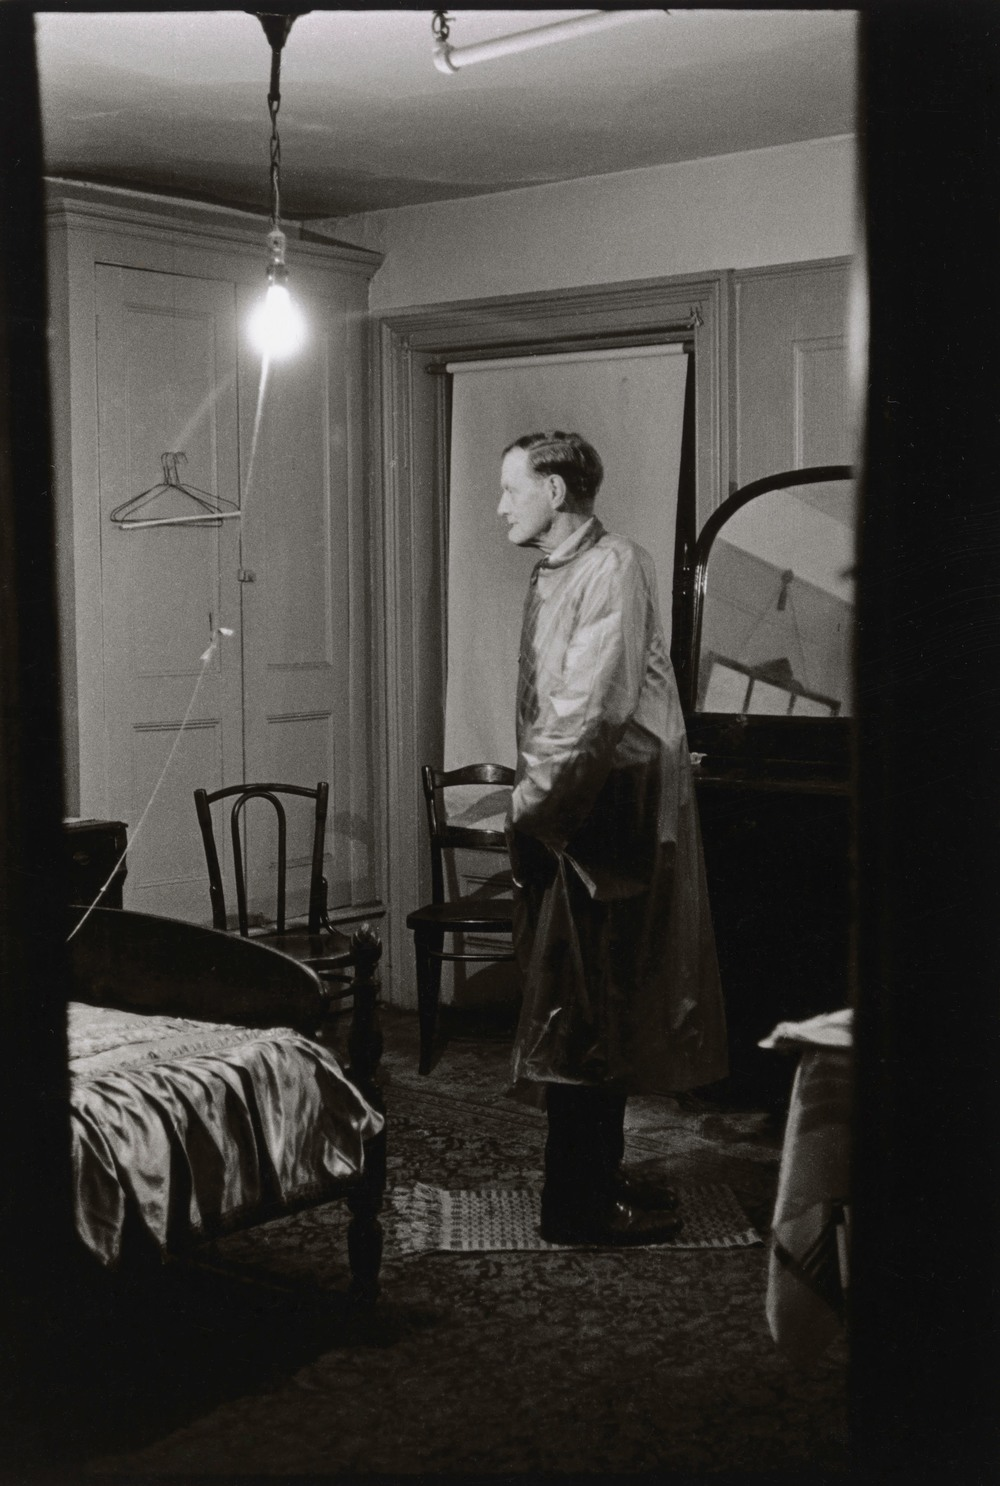 The Backwards Man in his hotel room, N.Y.C. 1961 © The Estate of Diane Arbus, LLC. All Rights Reserved